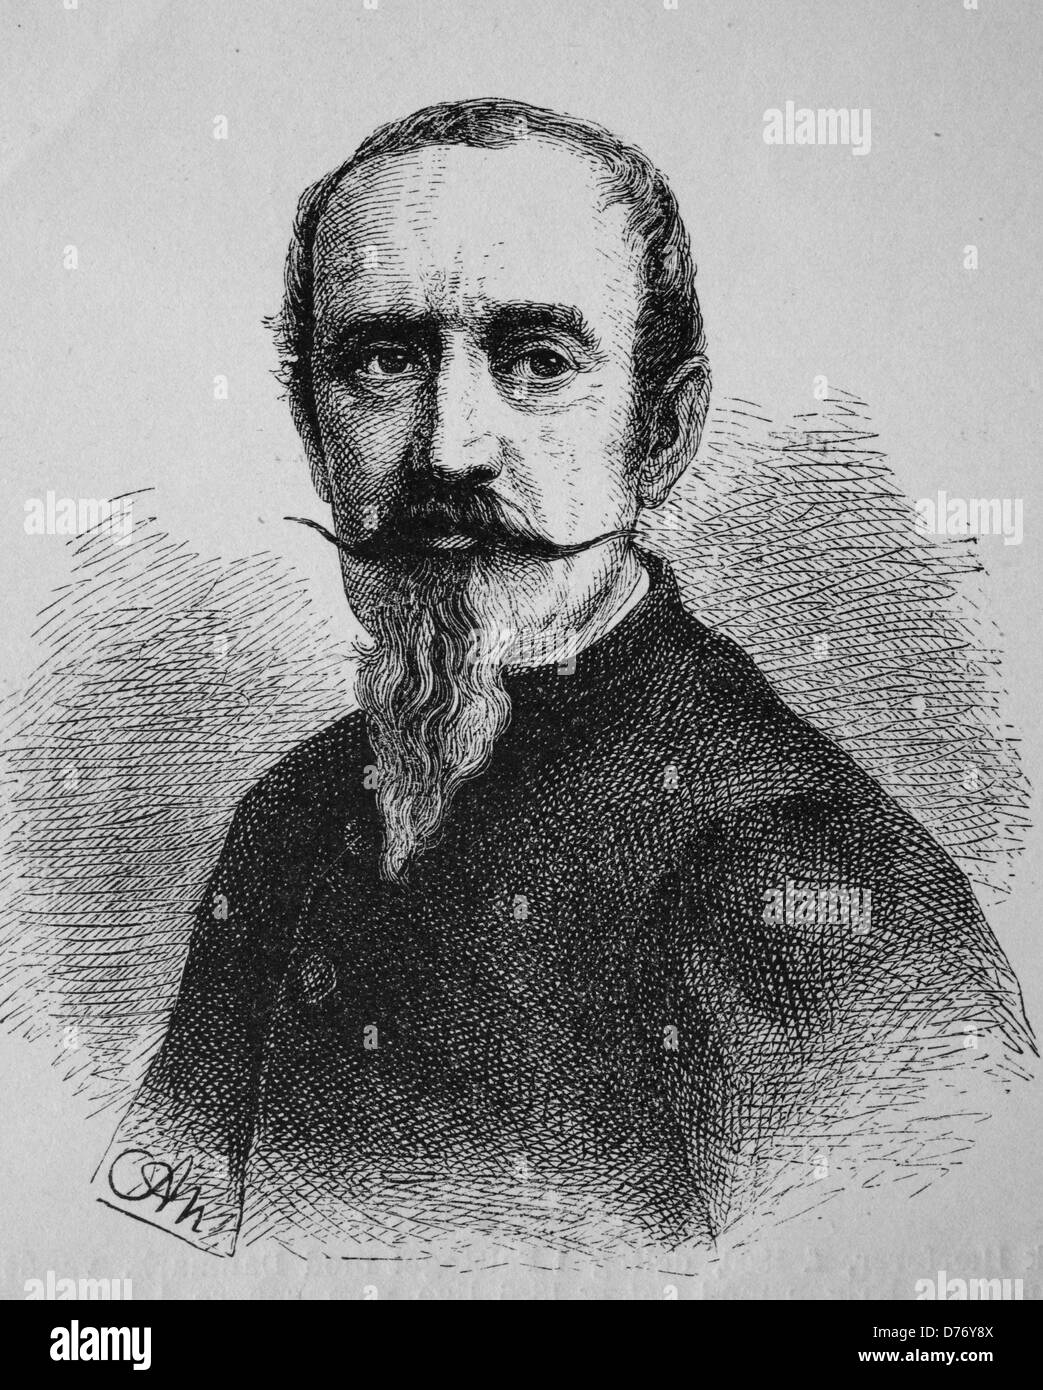 Horace Vernet, painter and lithographer, 1789 - 1863, historical woodcut, circa 1880 - Stock Image